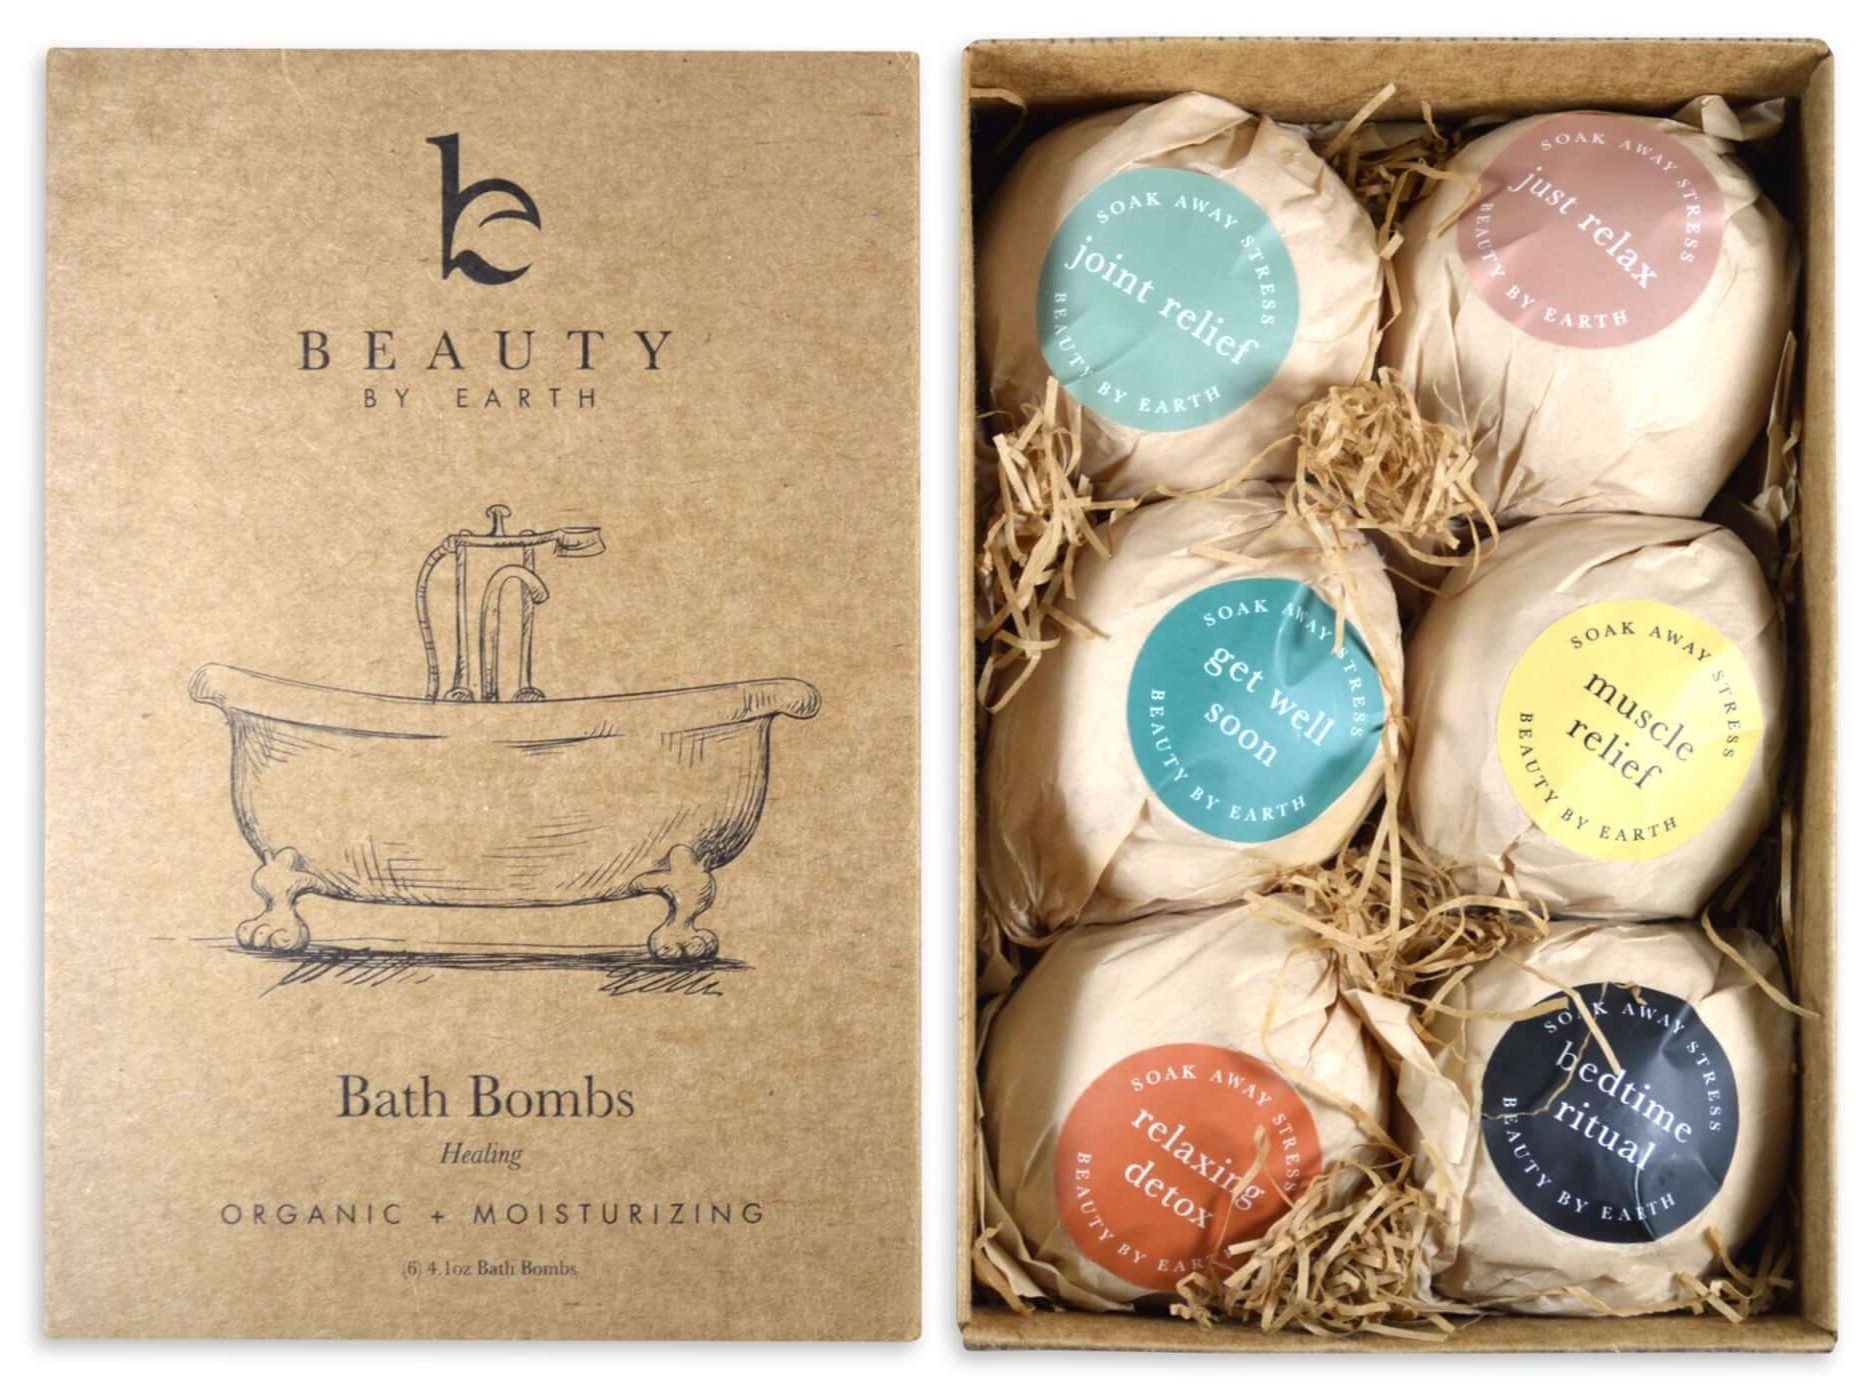 Beauty by Earth Bath Bombs | Mother's Day Gift Ideas | smelltheroses.com